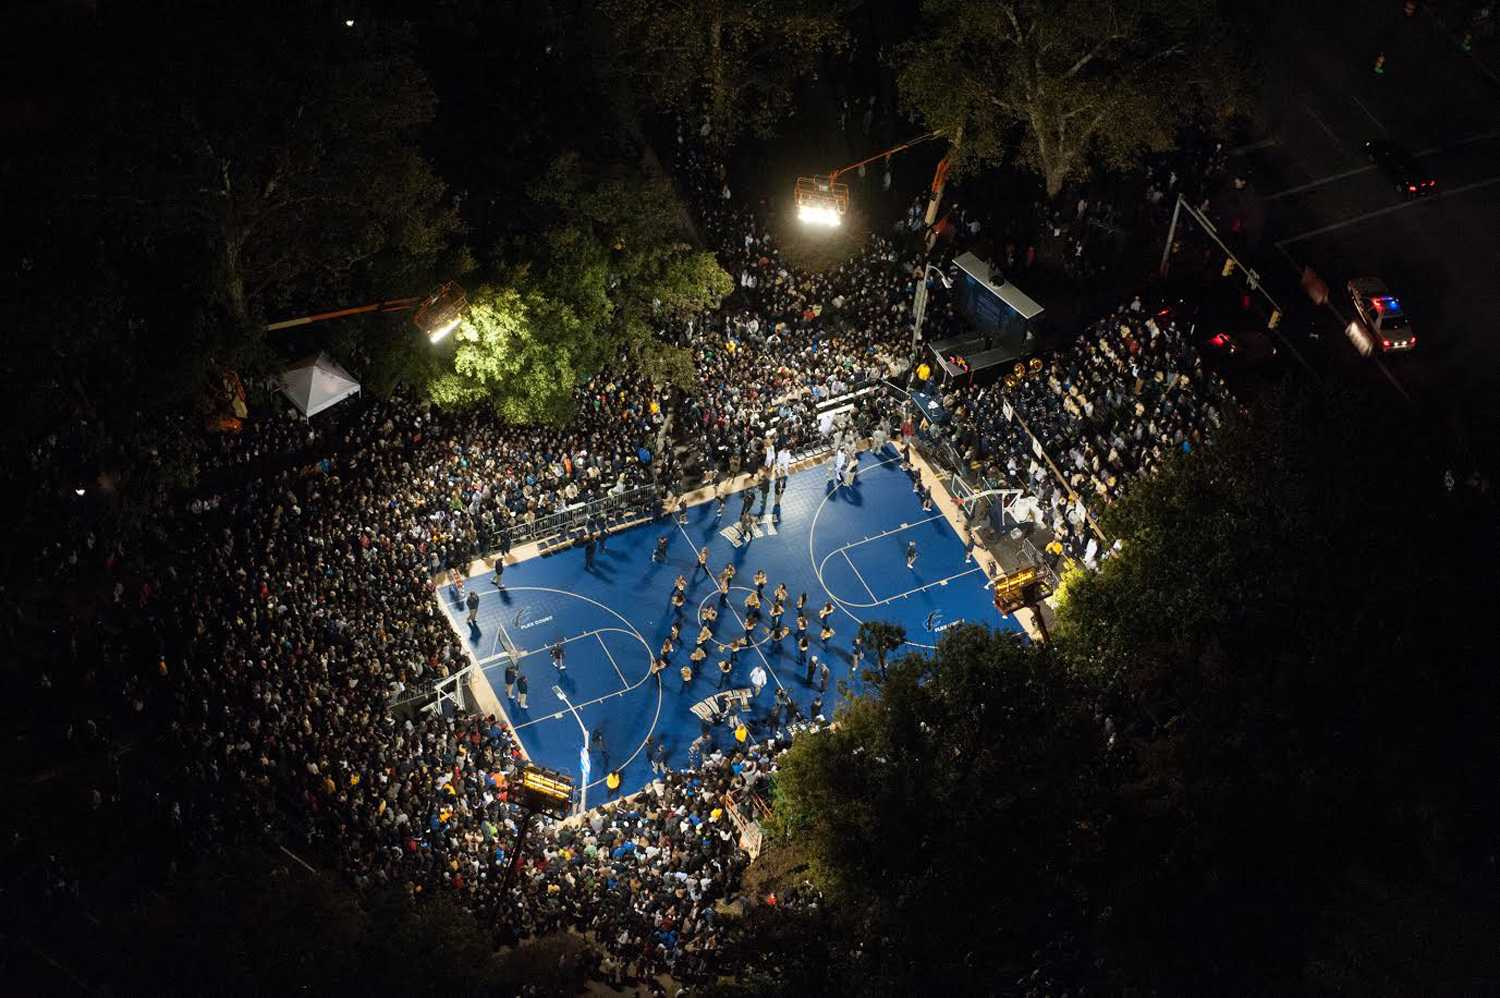 Students and fans gathered outside the Cathedral in 2012 to watch Pitt basketball take part in the night's events. (Courtesy of Pitt Athletics)